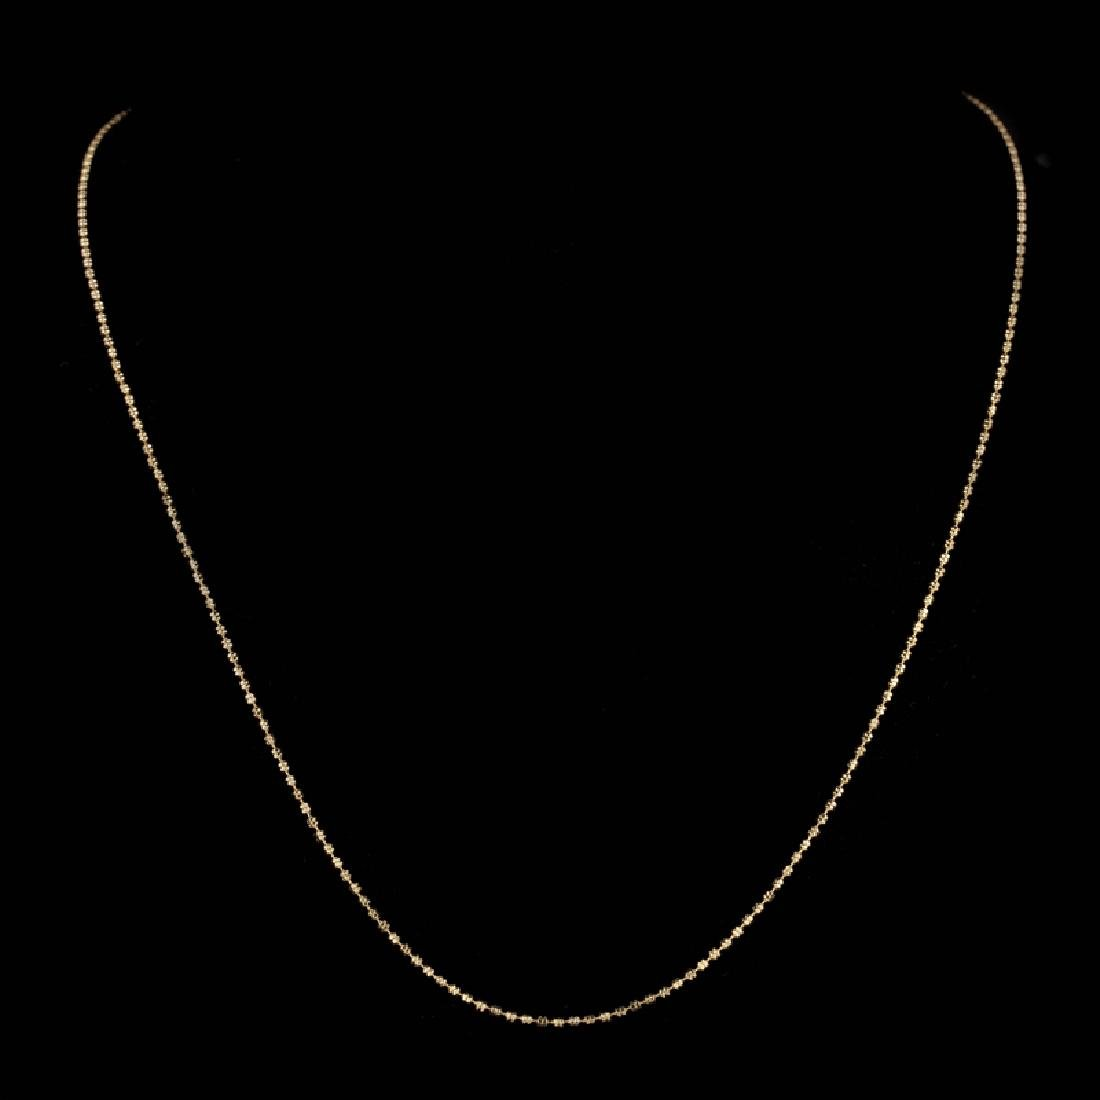 *Fine Jewelry 14 KT Gold, 3.8GR, 18'' Double Bead Chain